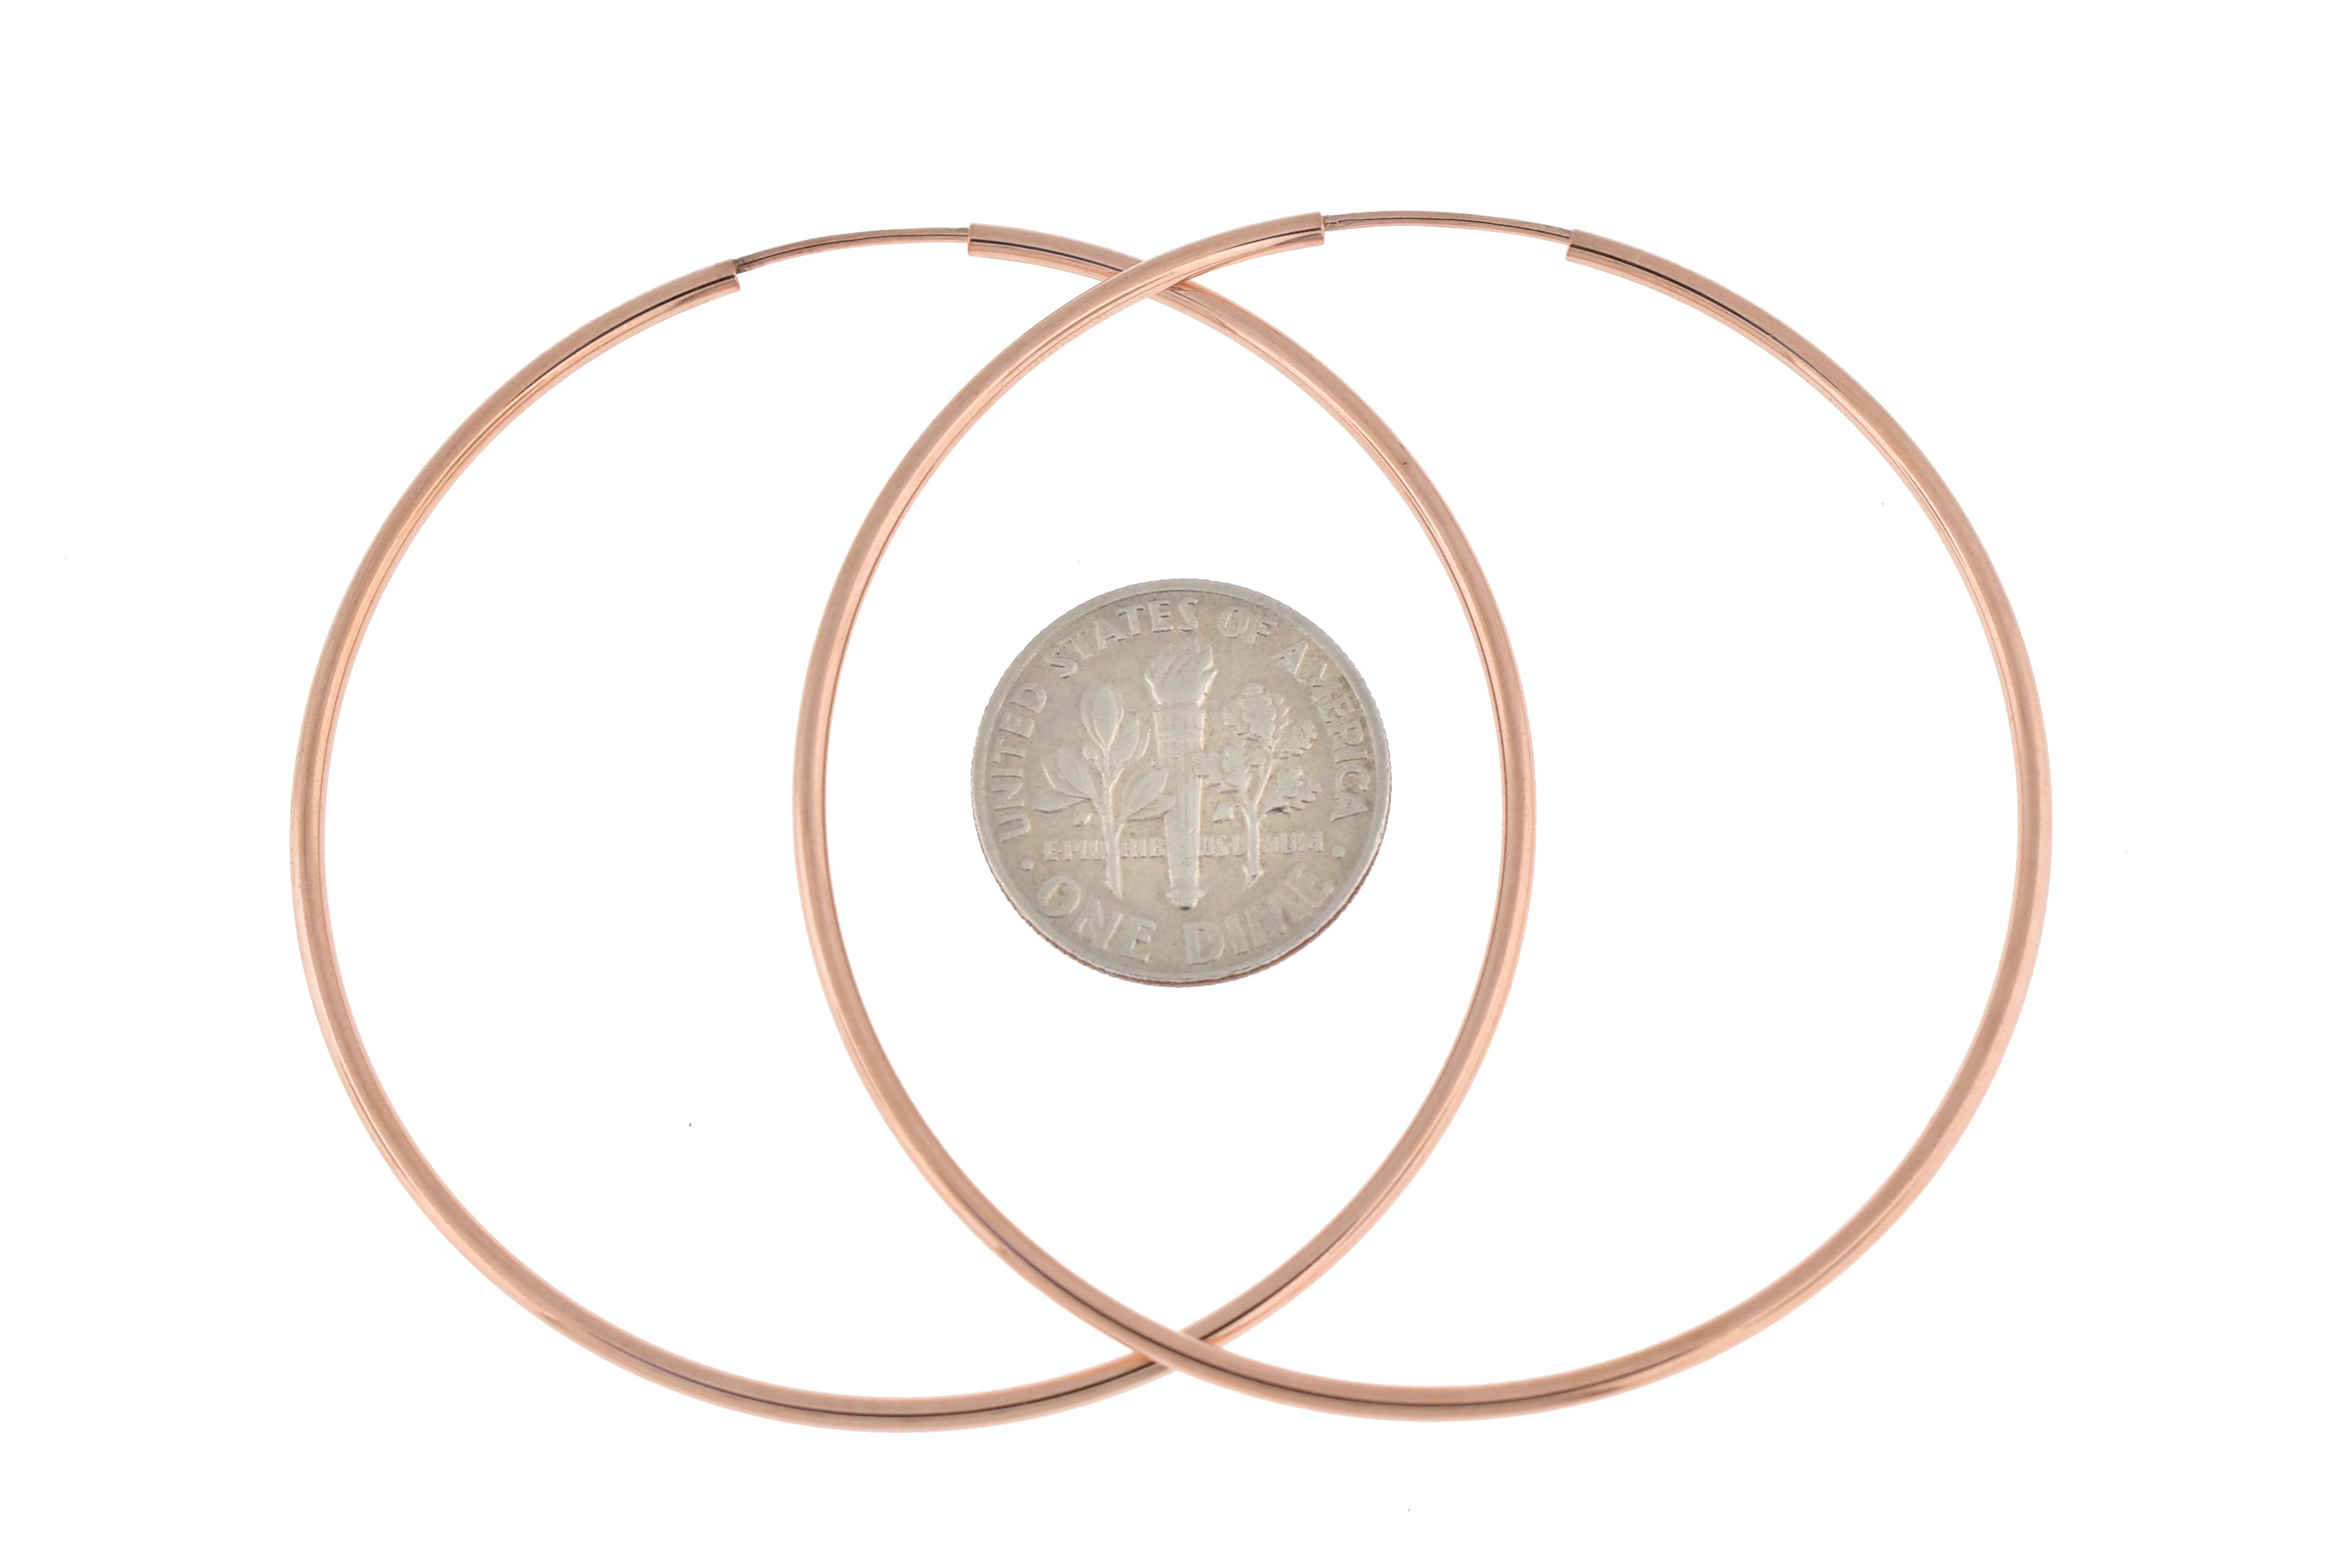 14k Rose Gold Classic Endless Round Hoop Earrings 50mm x 1.5mm